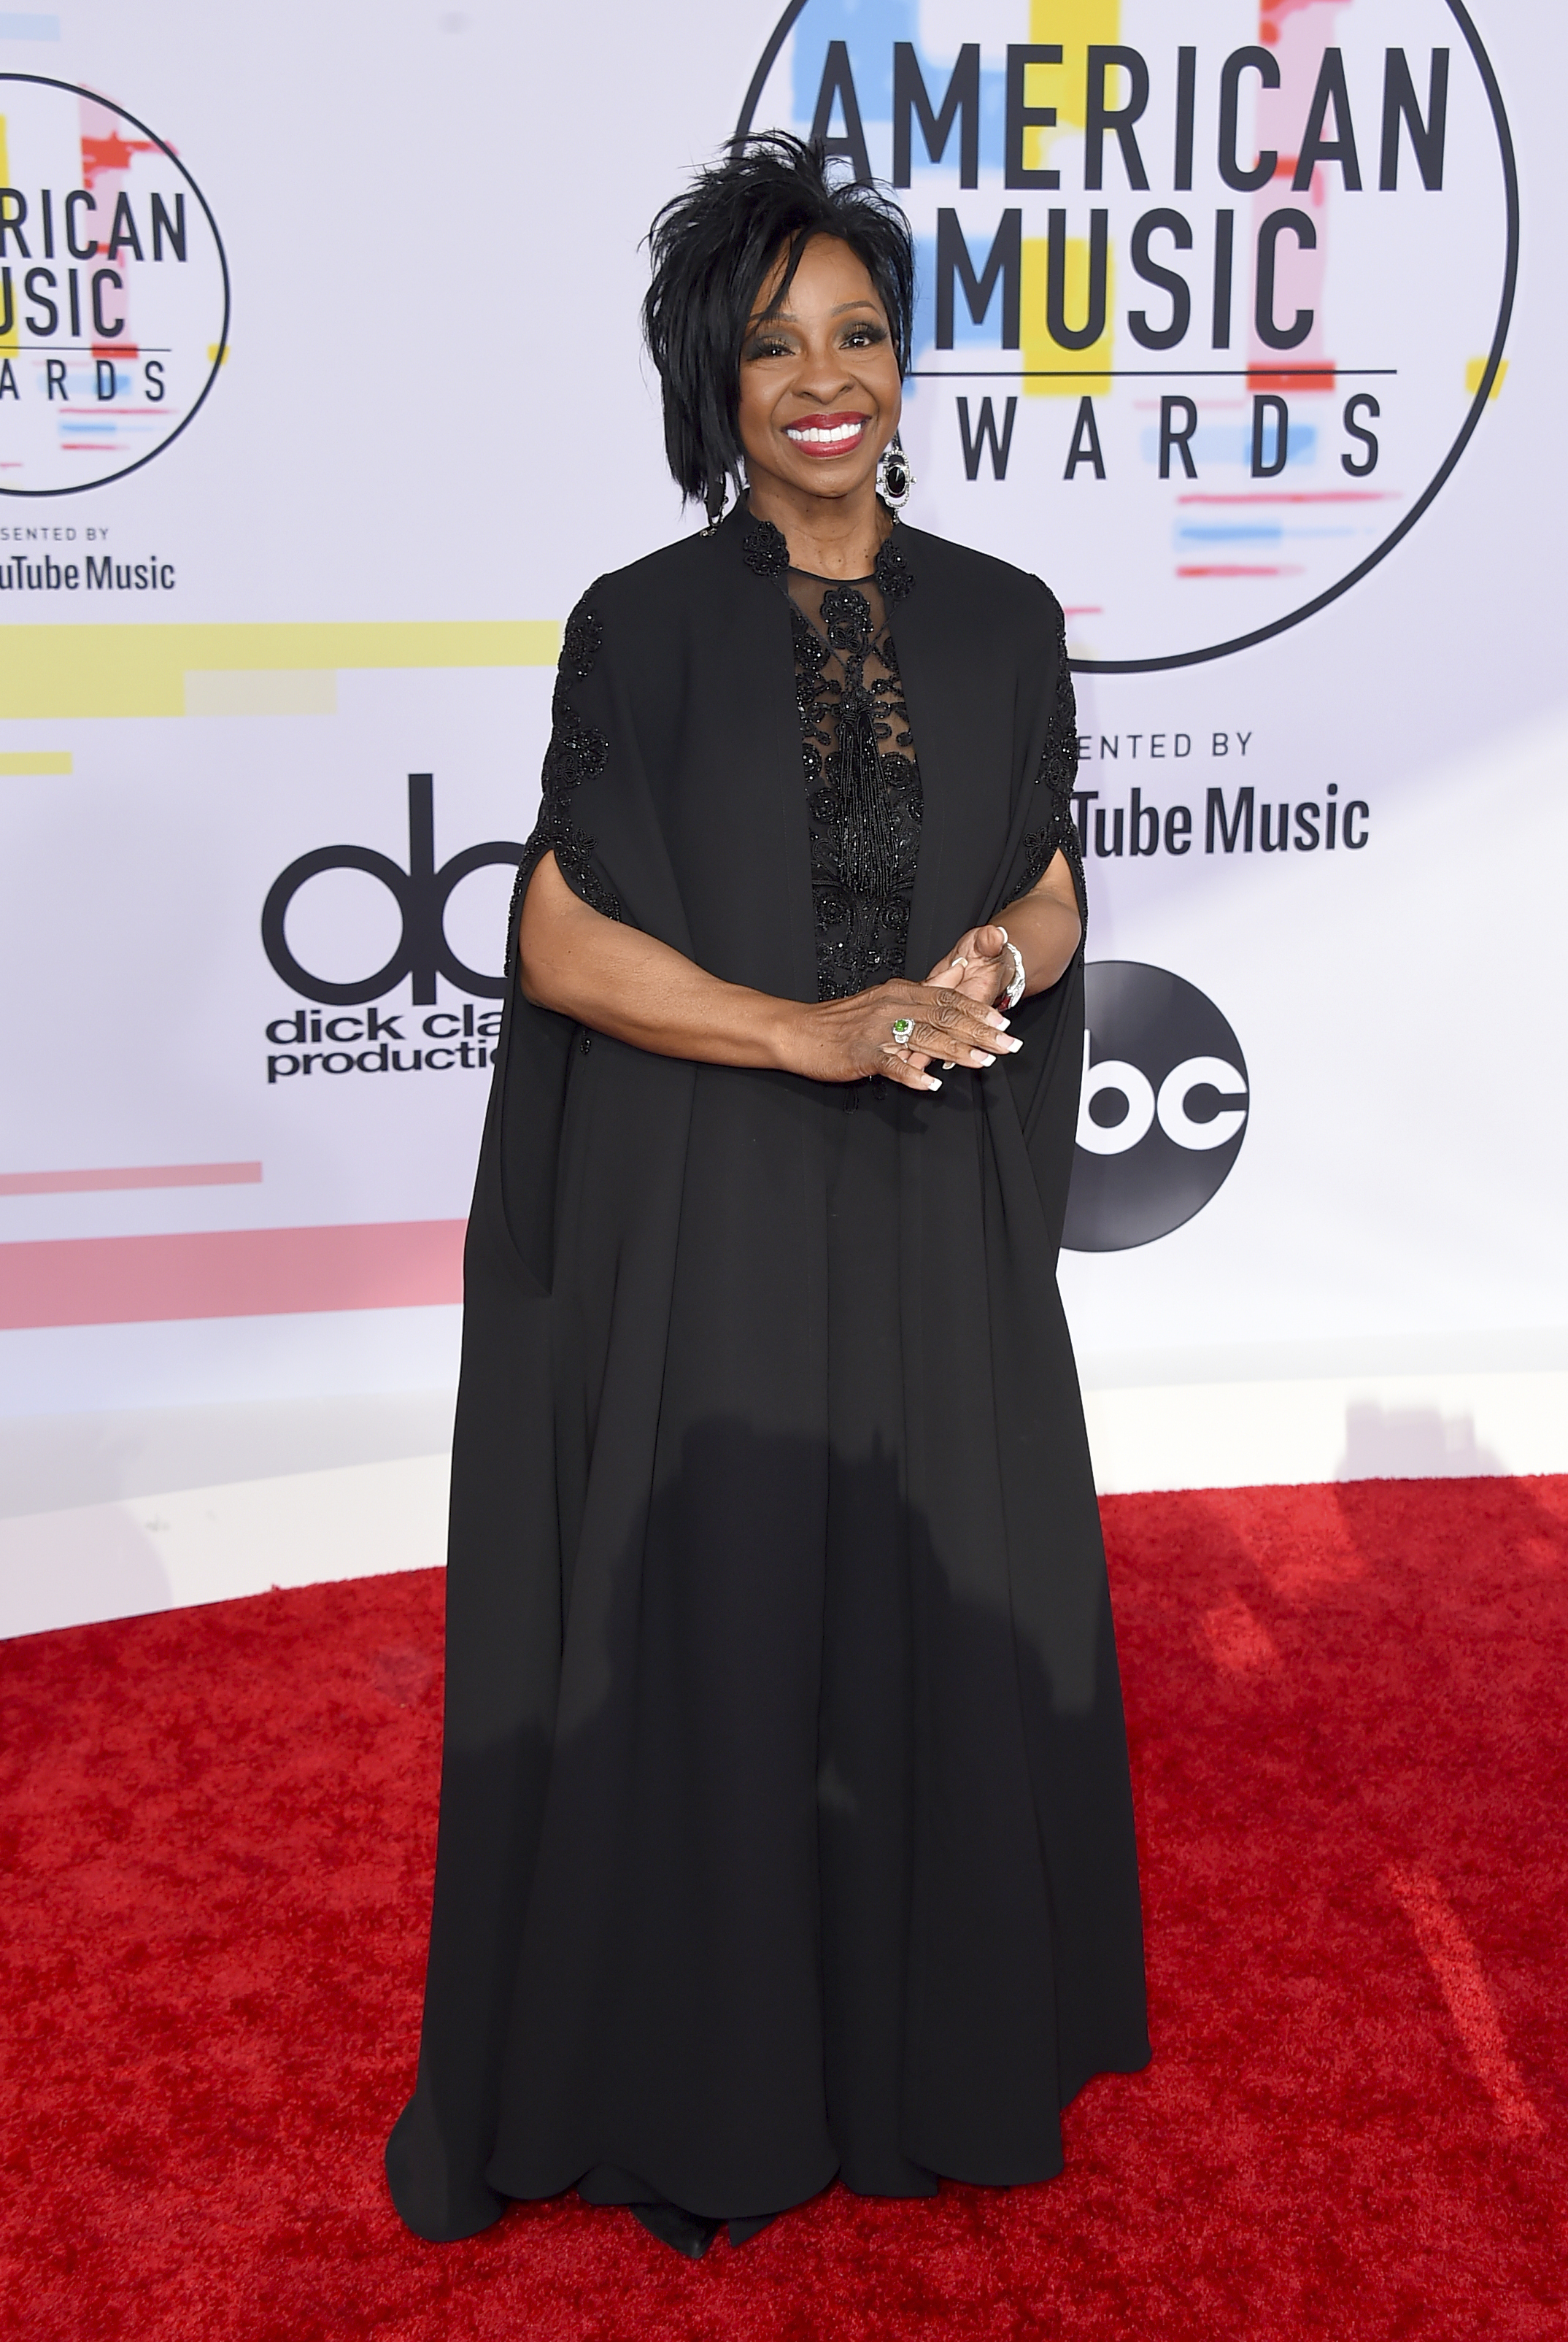 "<div class=""meta image-caption""><div class=""origin-logo origin-image none""><span>none</span></div><span class=""caption-text"">Gladys Knight arrives at the American Music Awards on Tuesday, Oct. 9, 2018, at the Microsoft Theater in Los Angeles. (Jordan Strauss/Invision/AP)</span></div>"